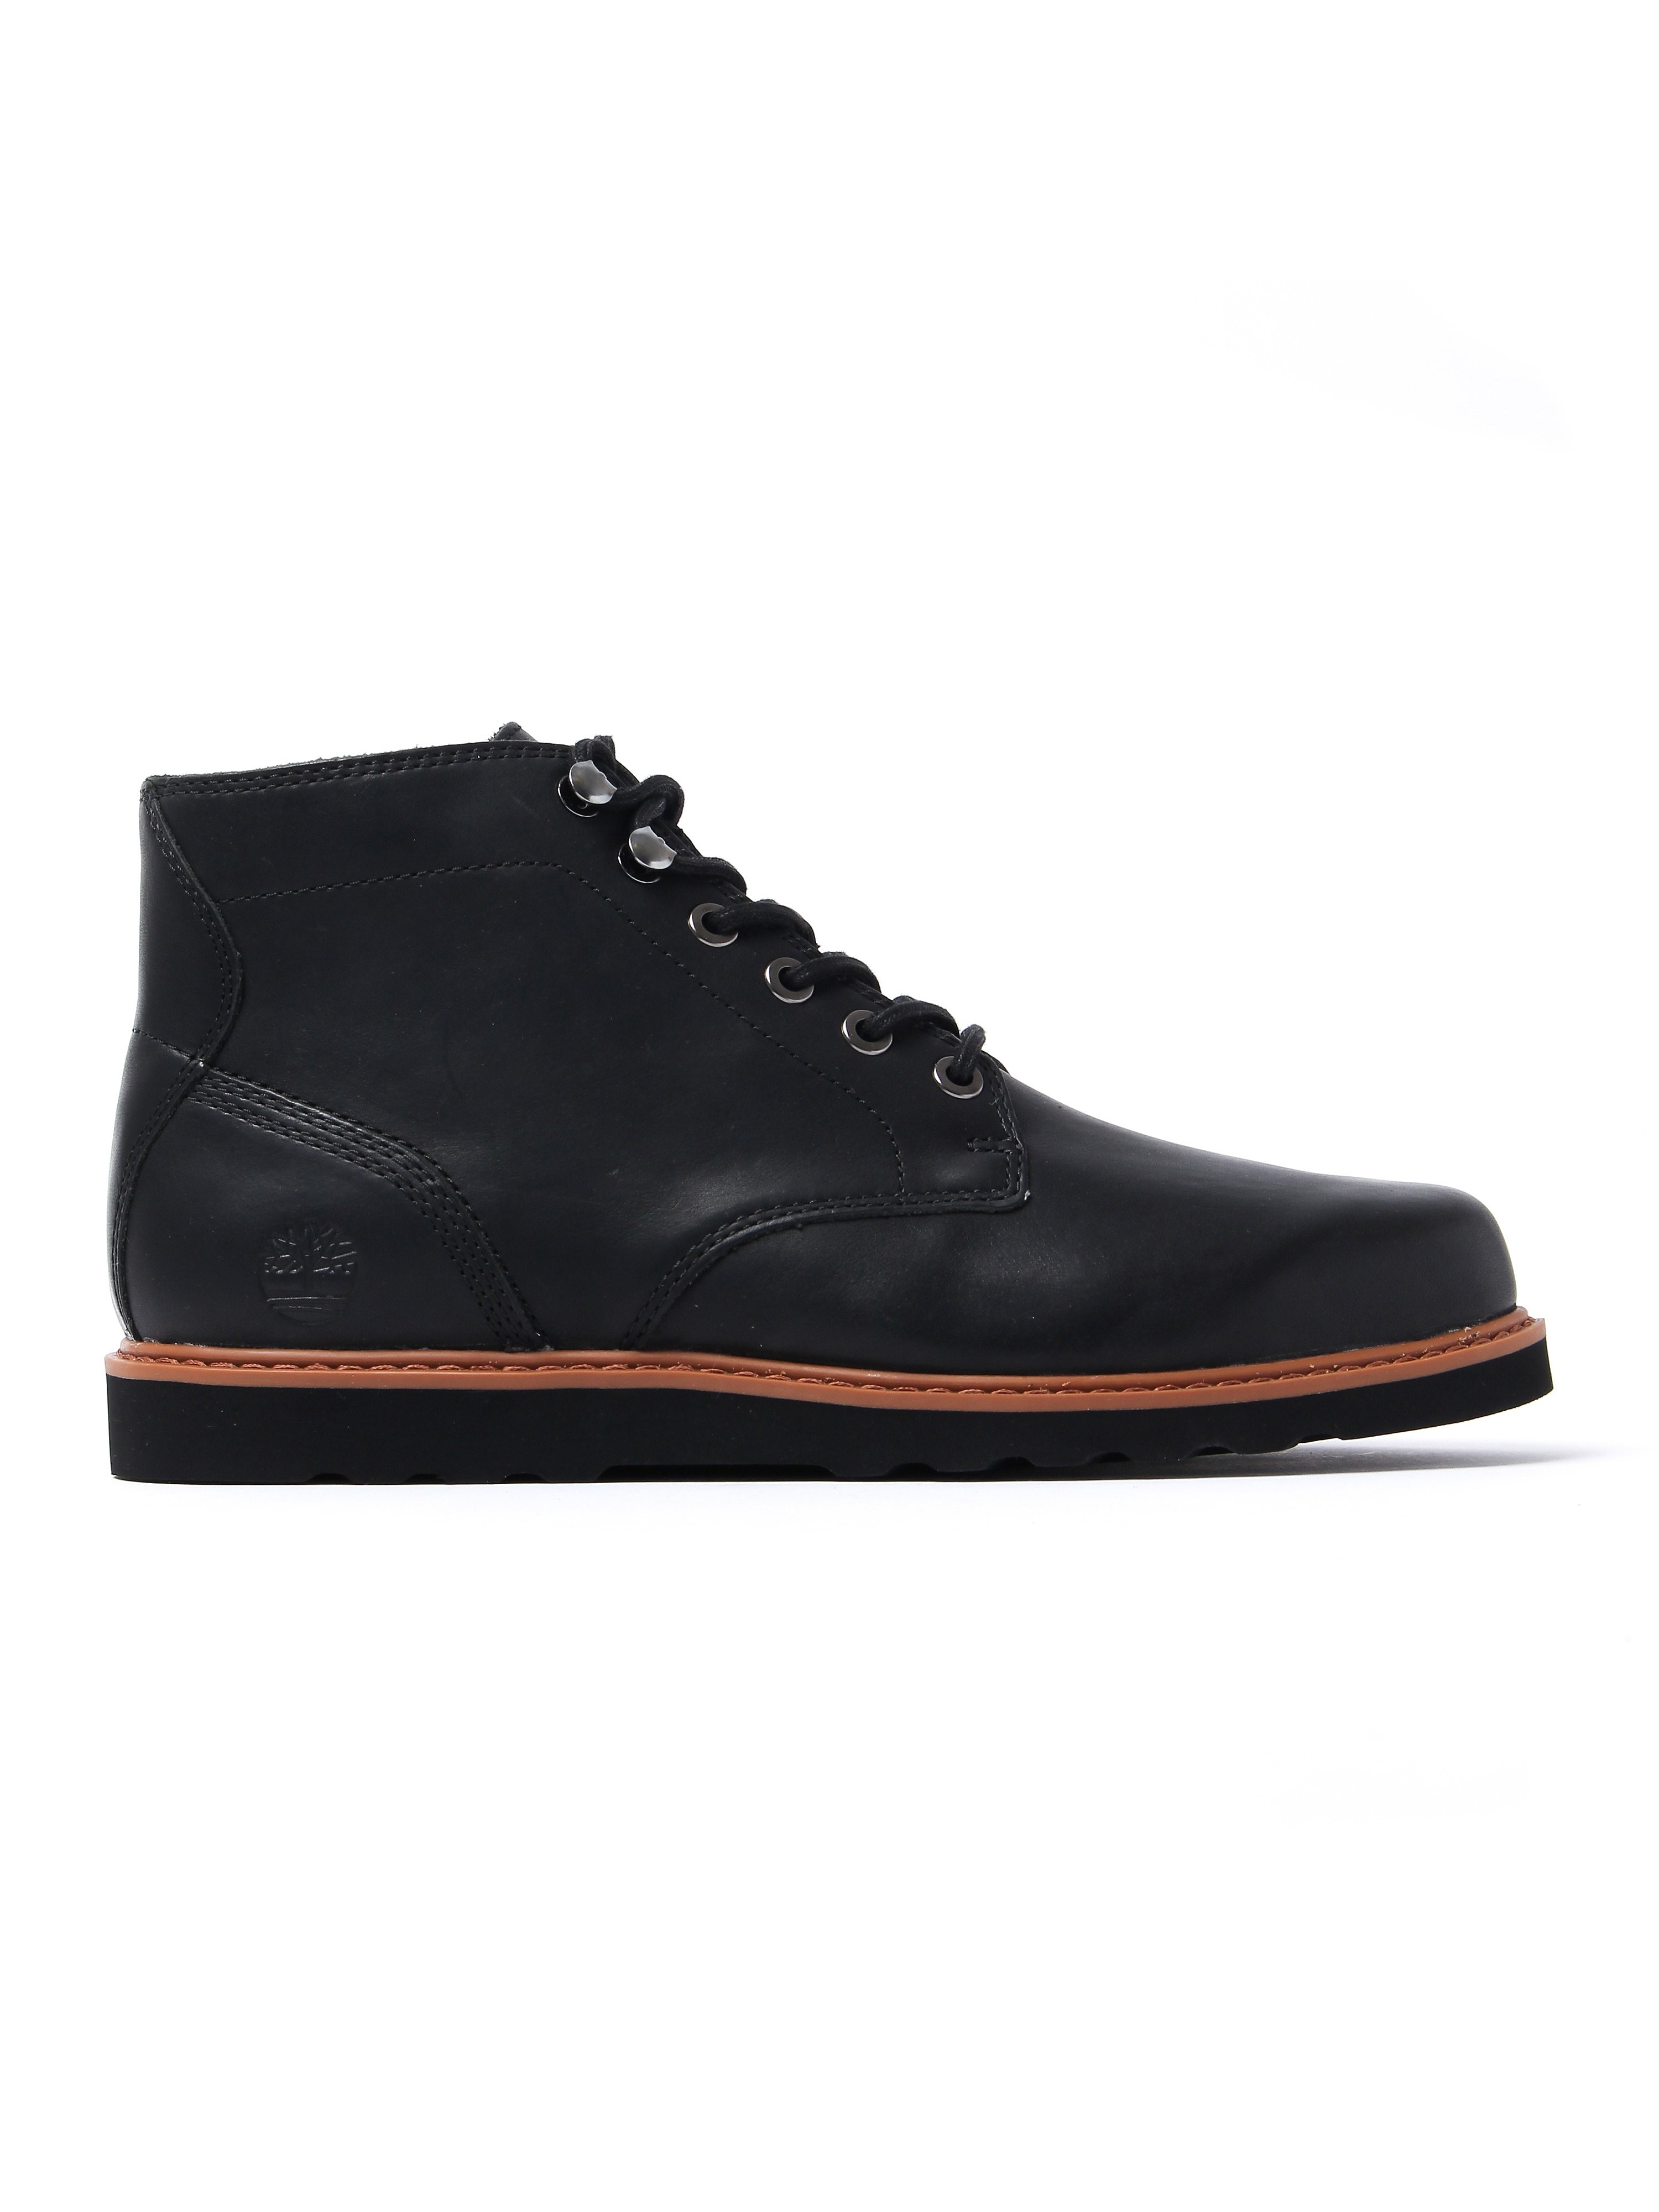 Timberland Men's Newmarket Chukka Boots - Jet Black Leather